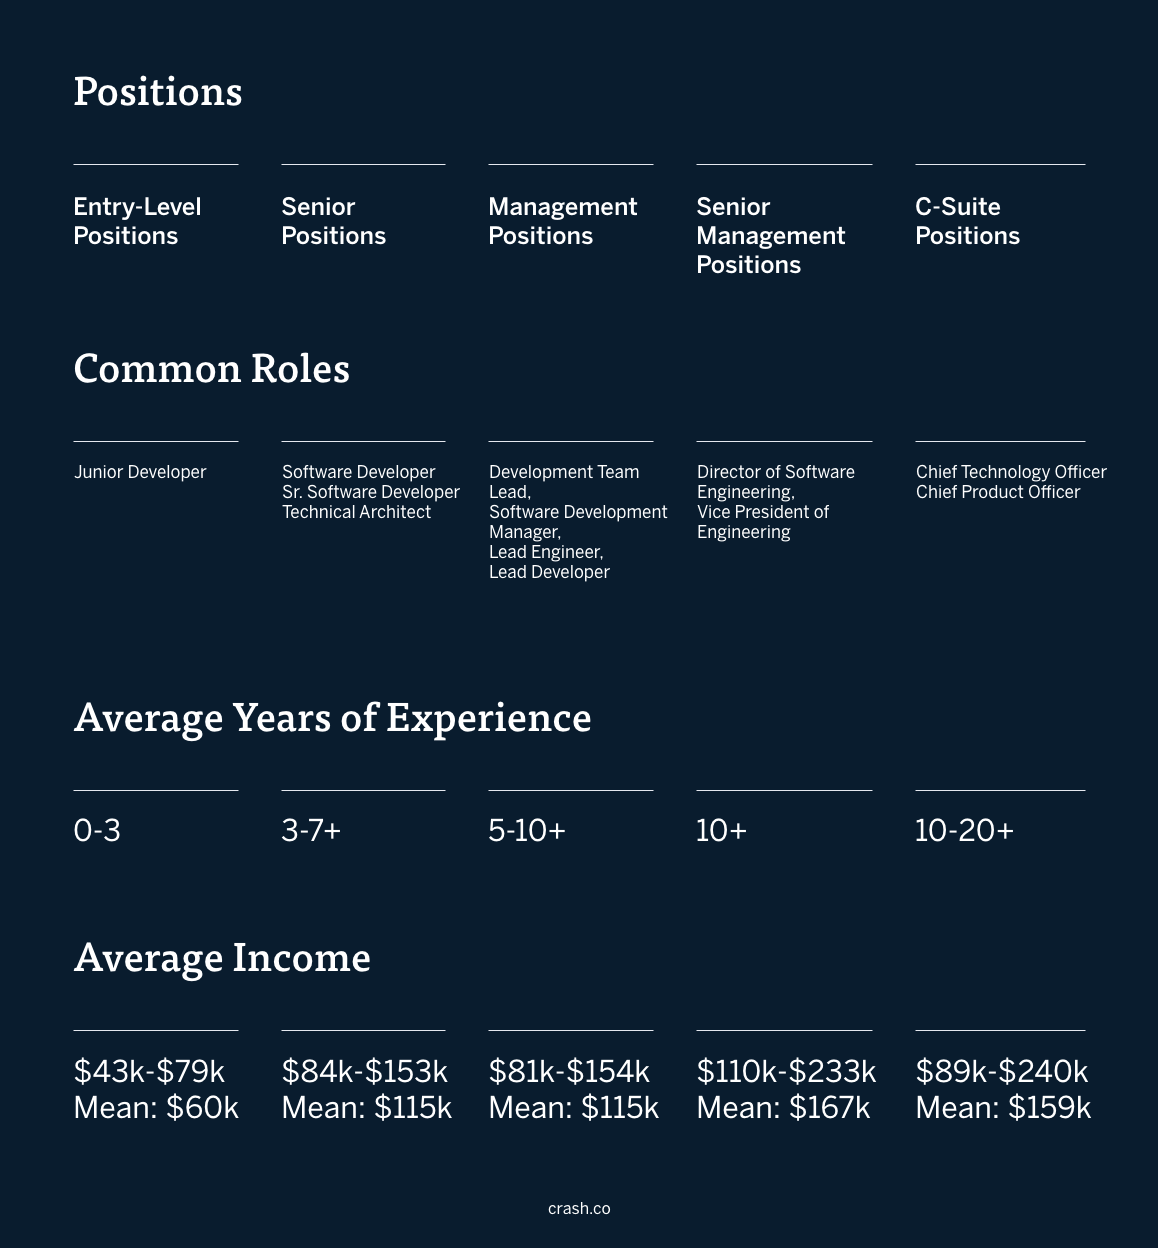 A graphic with columns on entry-level software development positions, common roles for entry-level software developers (junior developer), average years of experience for entry-level software developers (0-3+), and average income for entry-level software developers ($60k). Also includes senior software developer common roles (Software Developer, Sr. Software Developer, Technical Architect) and software developer management common roles (Development Team Lead, Software Development Manager, Lead Engineer, Lead Developer), senior software developer average years of experience (3-7+) and years of experience for software developer management jobs (5-10+), and average income for senior software developers ($115k) and average income for software developer managers ($115k) from Payscale. There is a breakdown of senior management software developer positions–common roles for senior management software developers (Director of Software Engineering, Vice President of Engineering), senior management software developers average years of experience (10+),  and average income for senior management software developers ($167k). Also included in the last column is software developer c-suite positions–common software developer c-suite jobs (Chief Technology Officer, Chief Product Officer), average years of experience for c-suite software developer jobs (10-20+), and average income for c-suite marketing jobs ($159k).